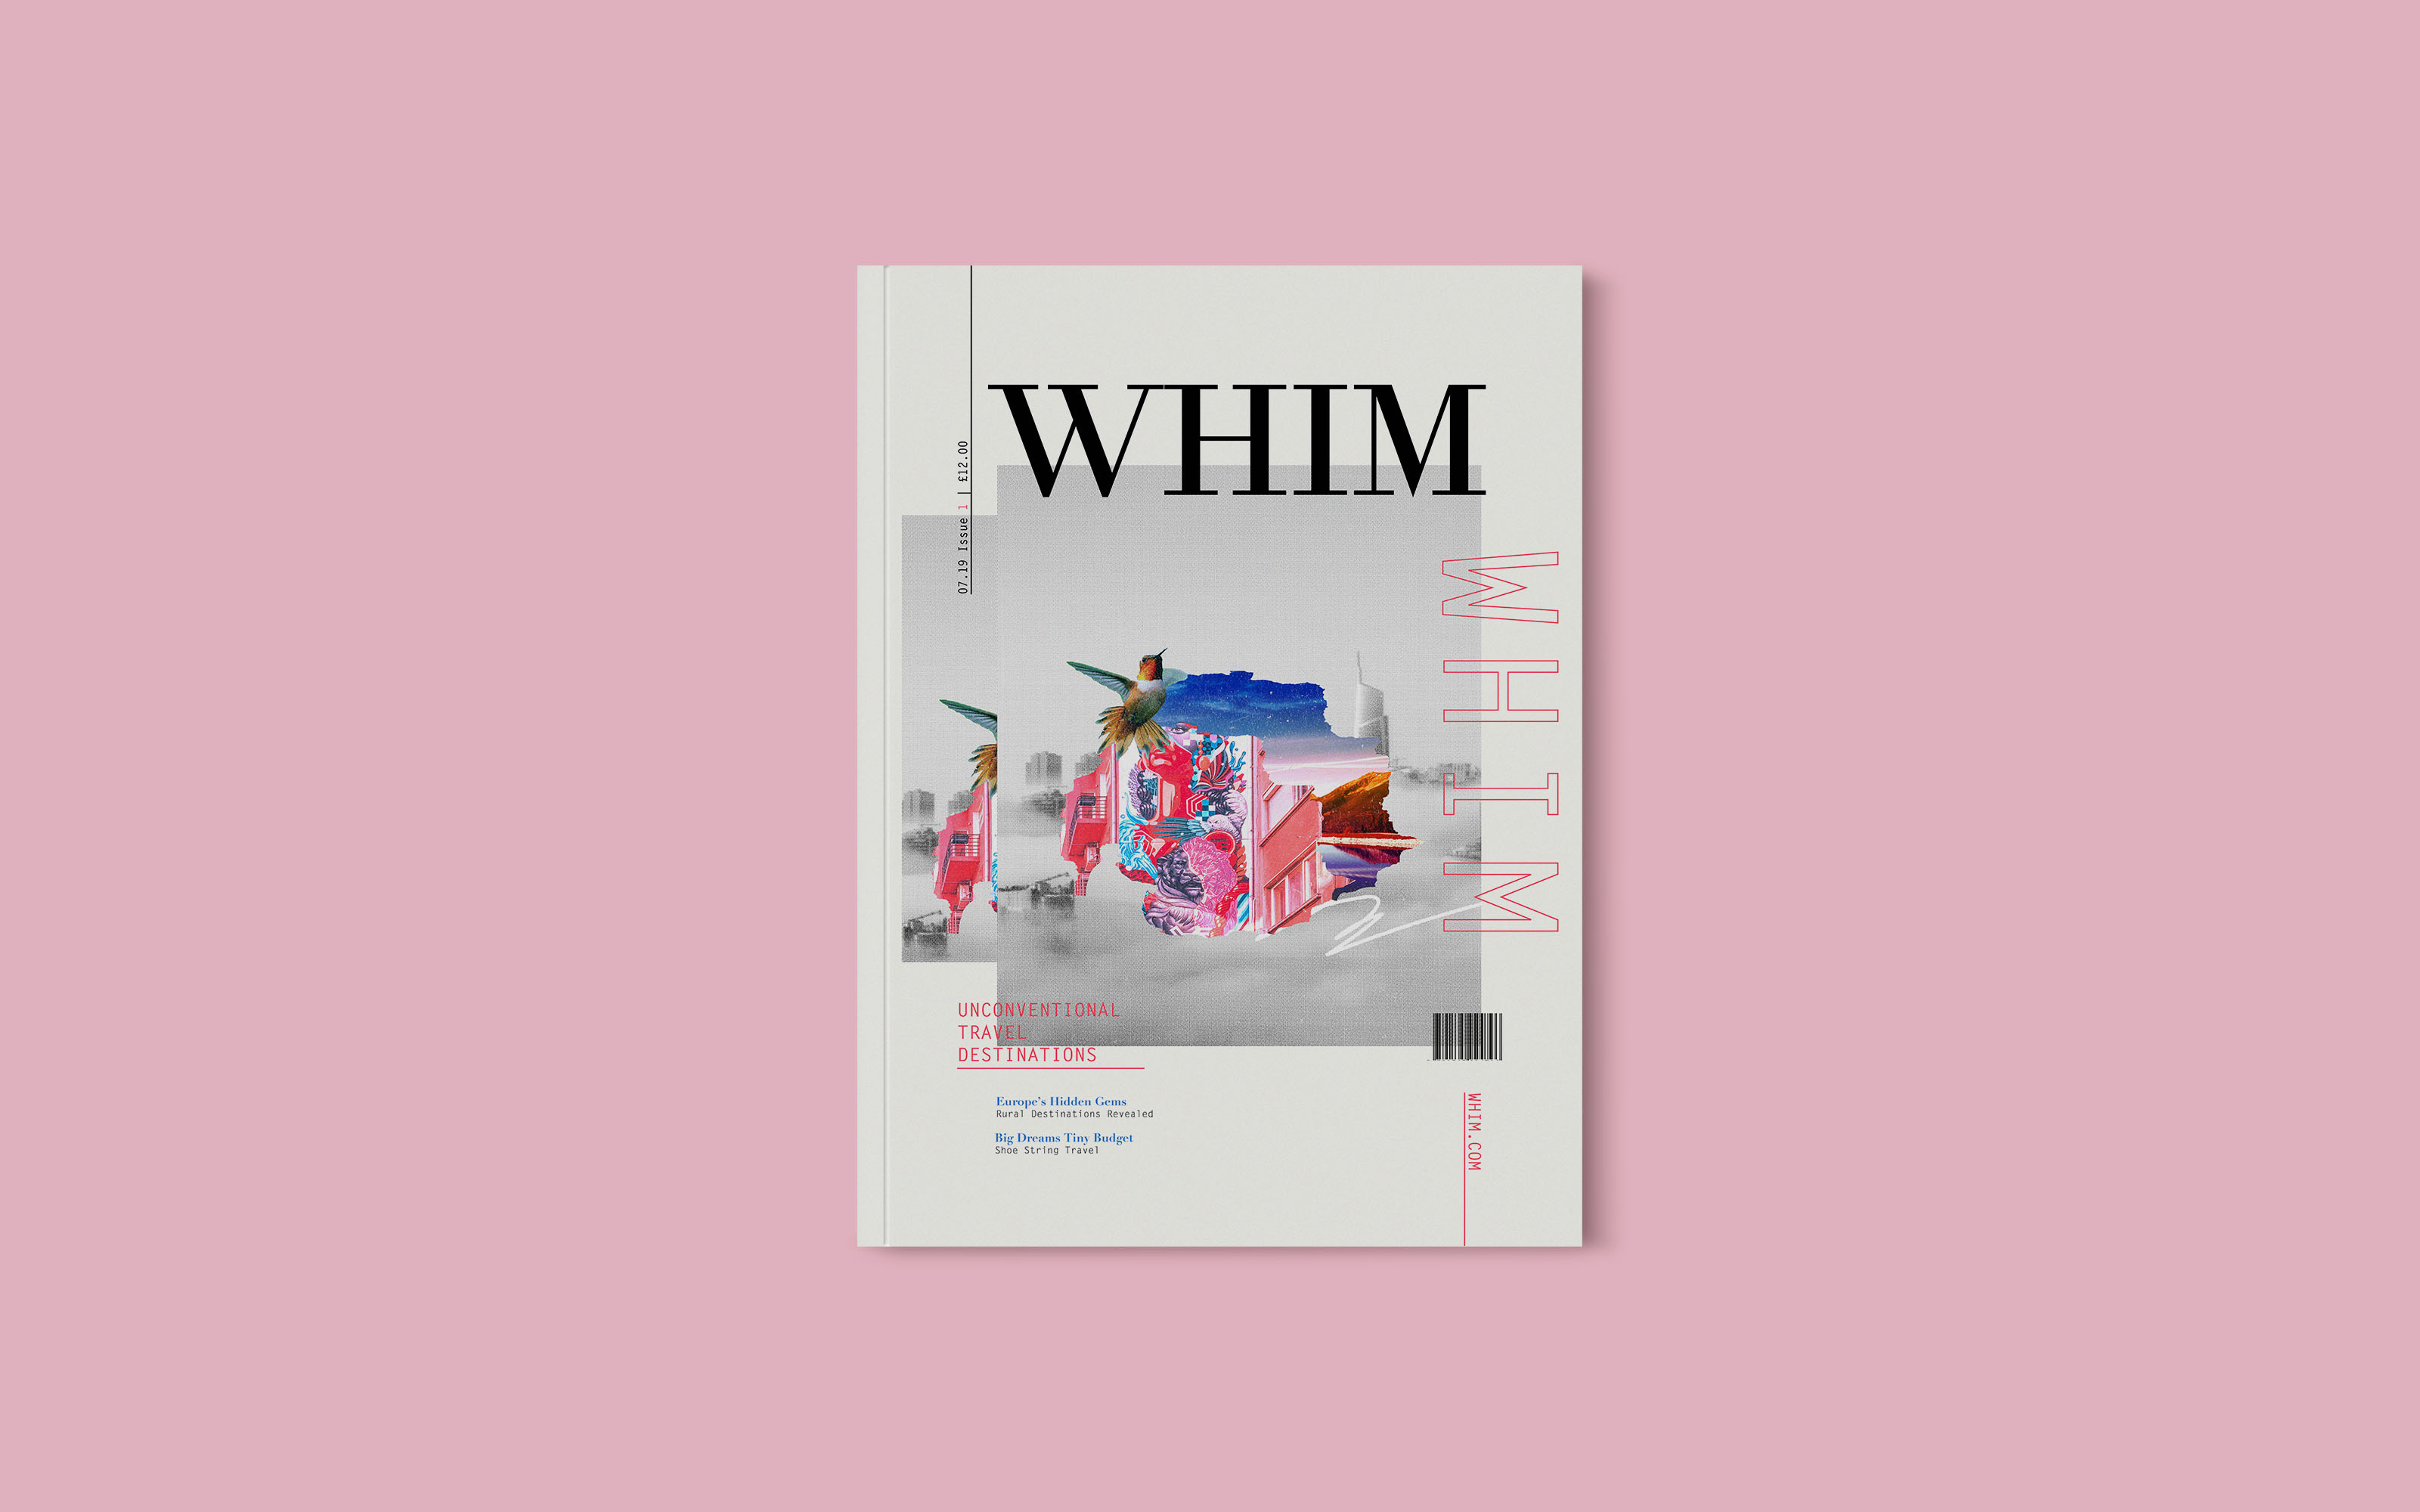 Whim – The Unconventional Series